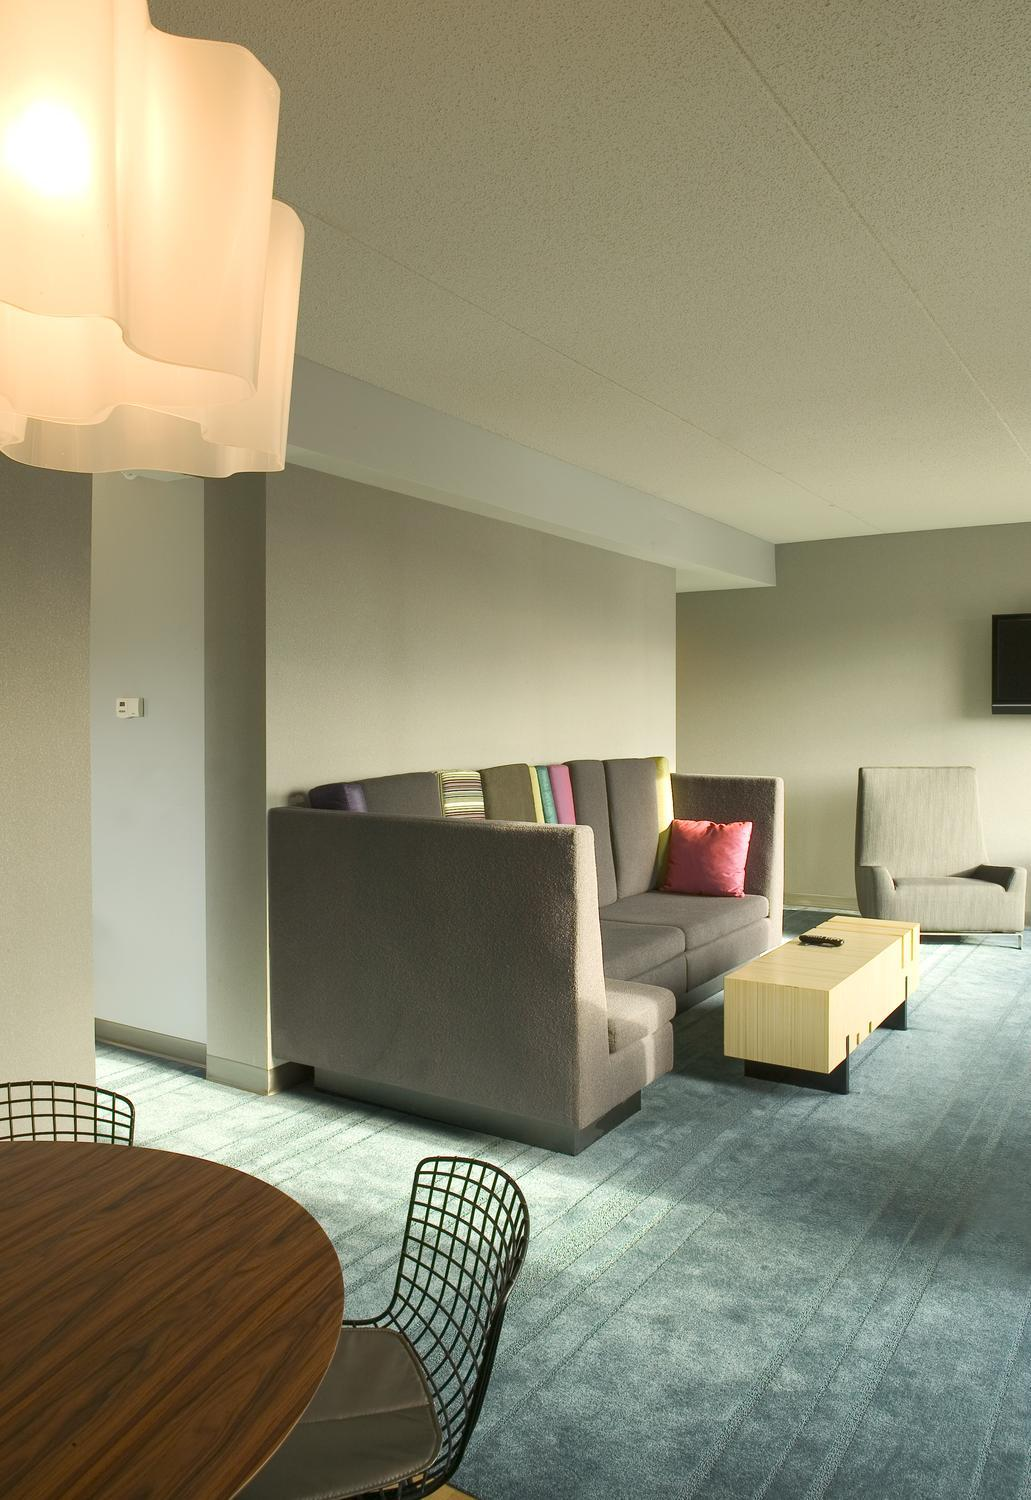 Living room seating area in a guest room in the Aloft Hotel in Minneapolis, MN